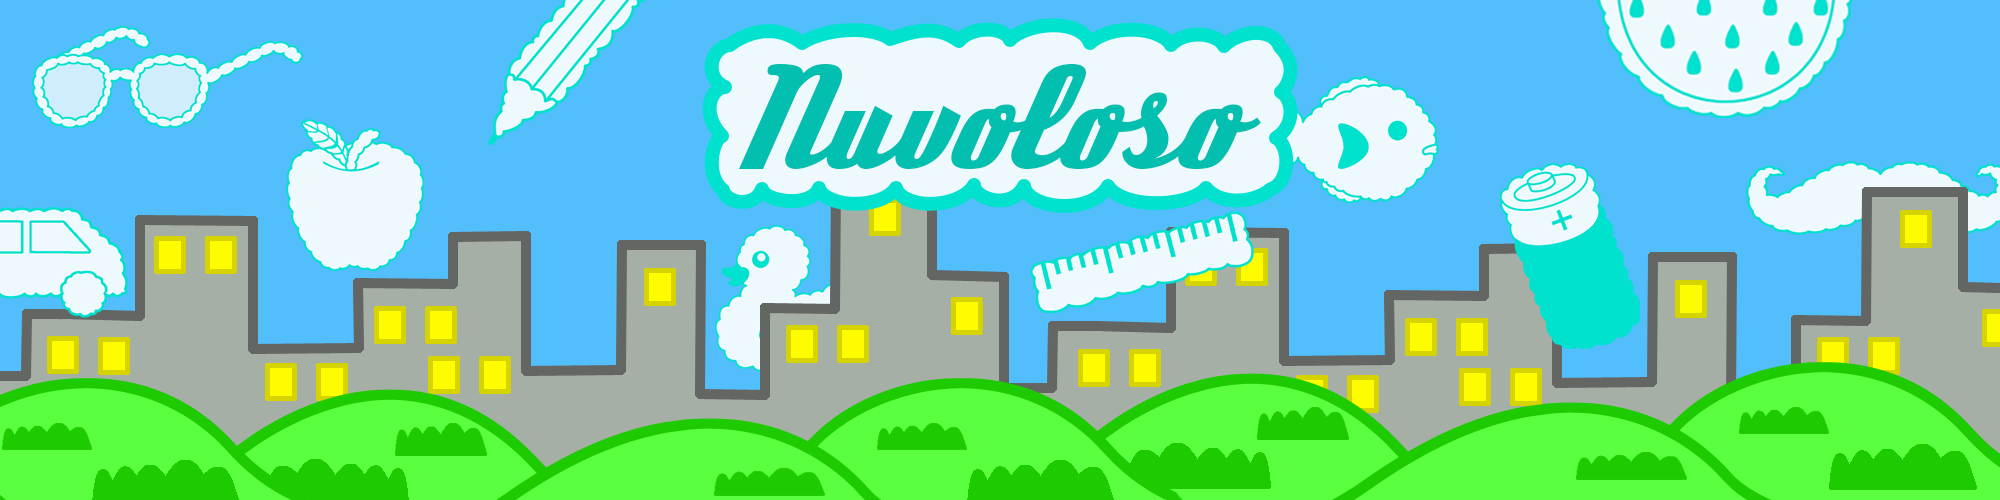 Nuvoloso